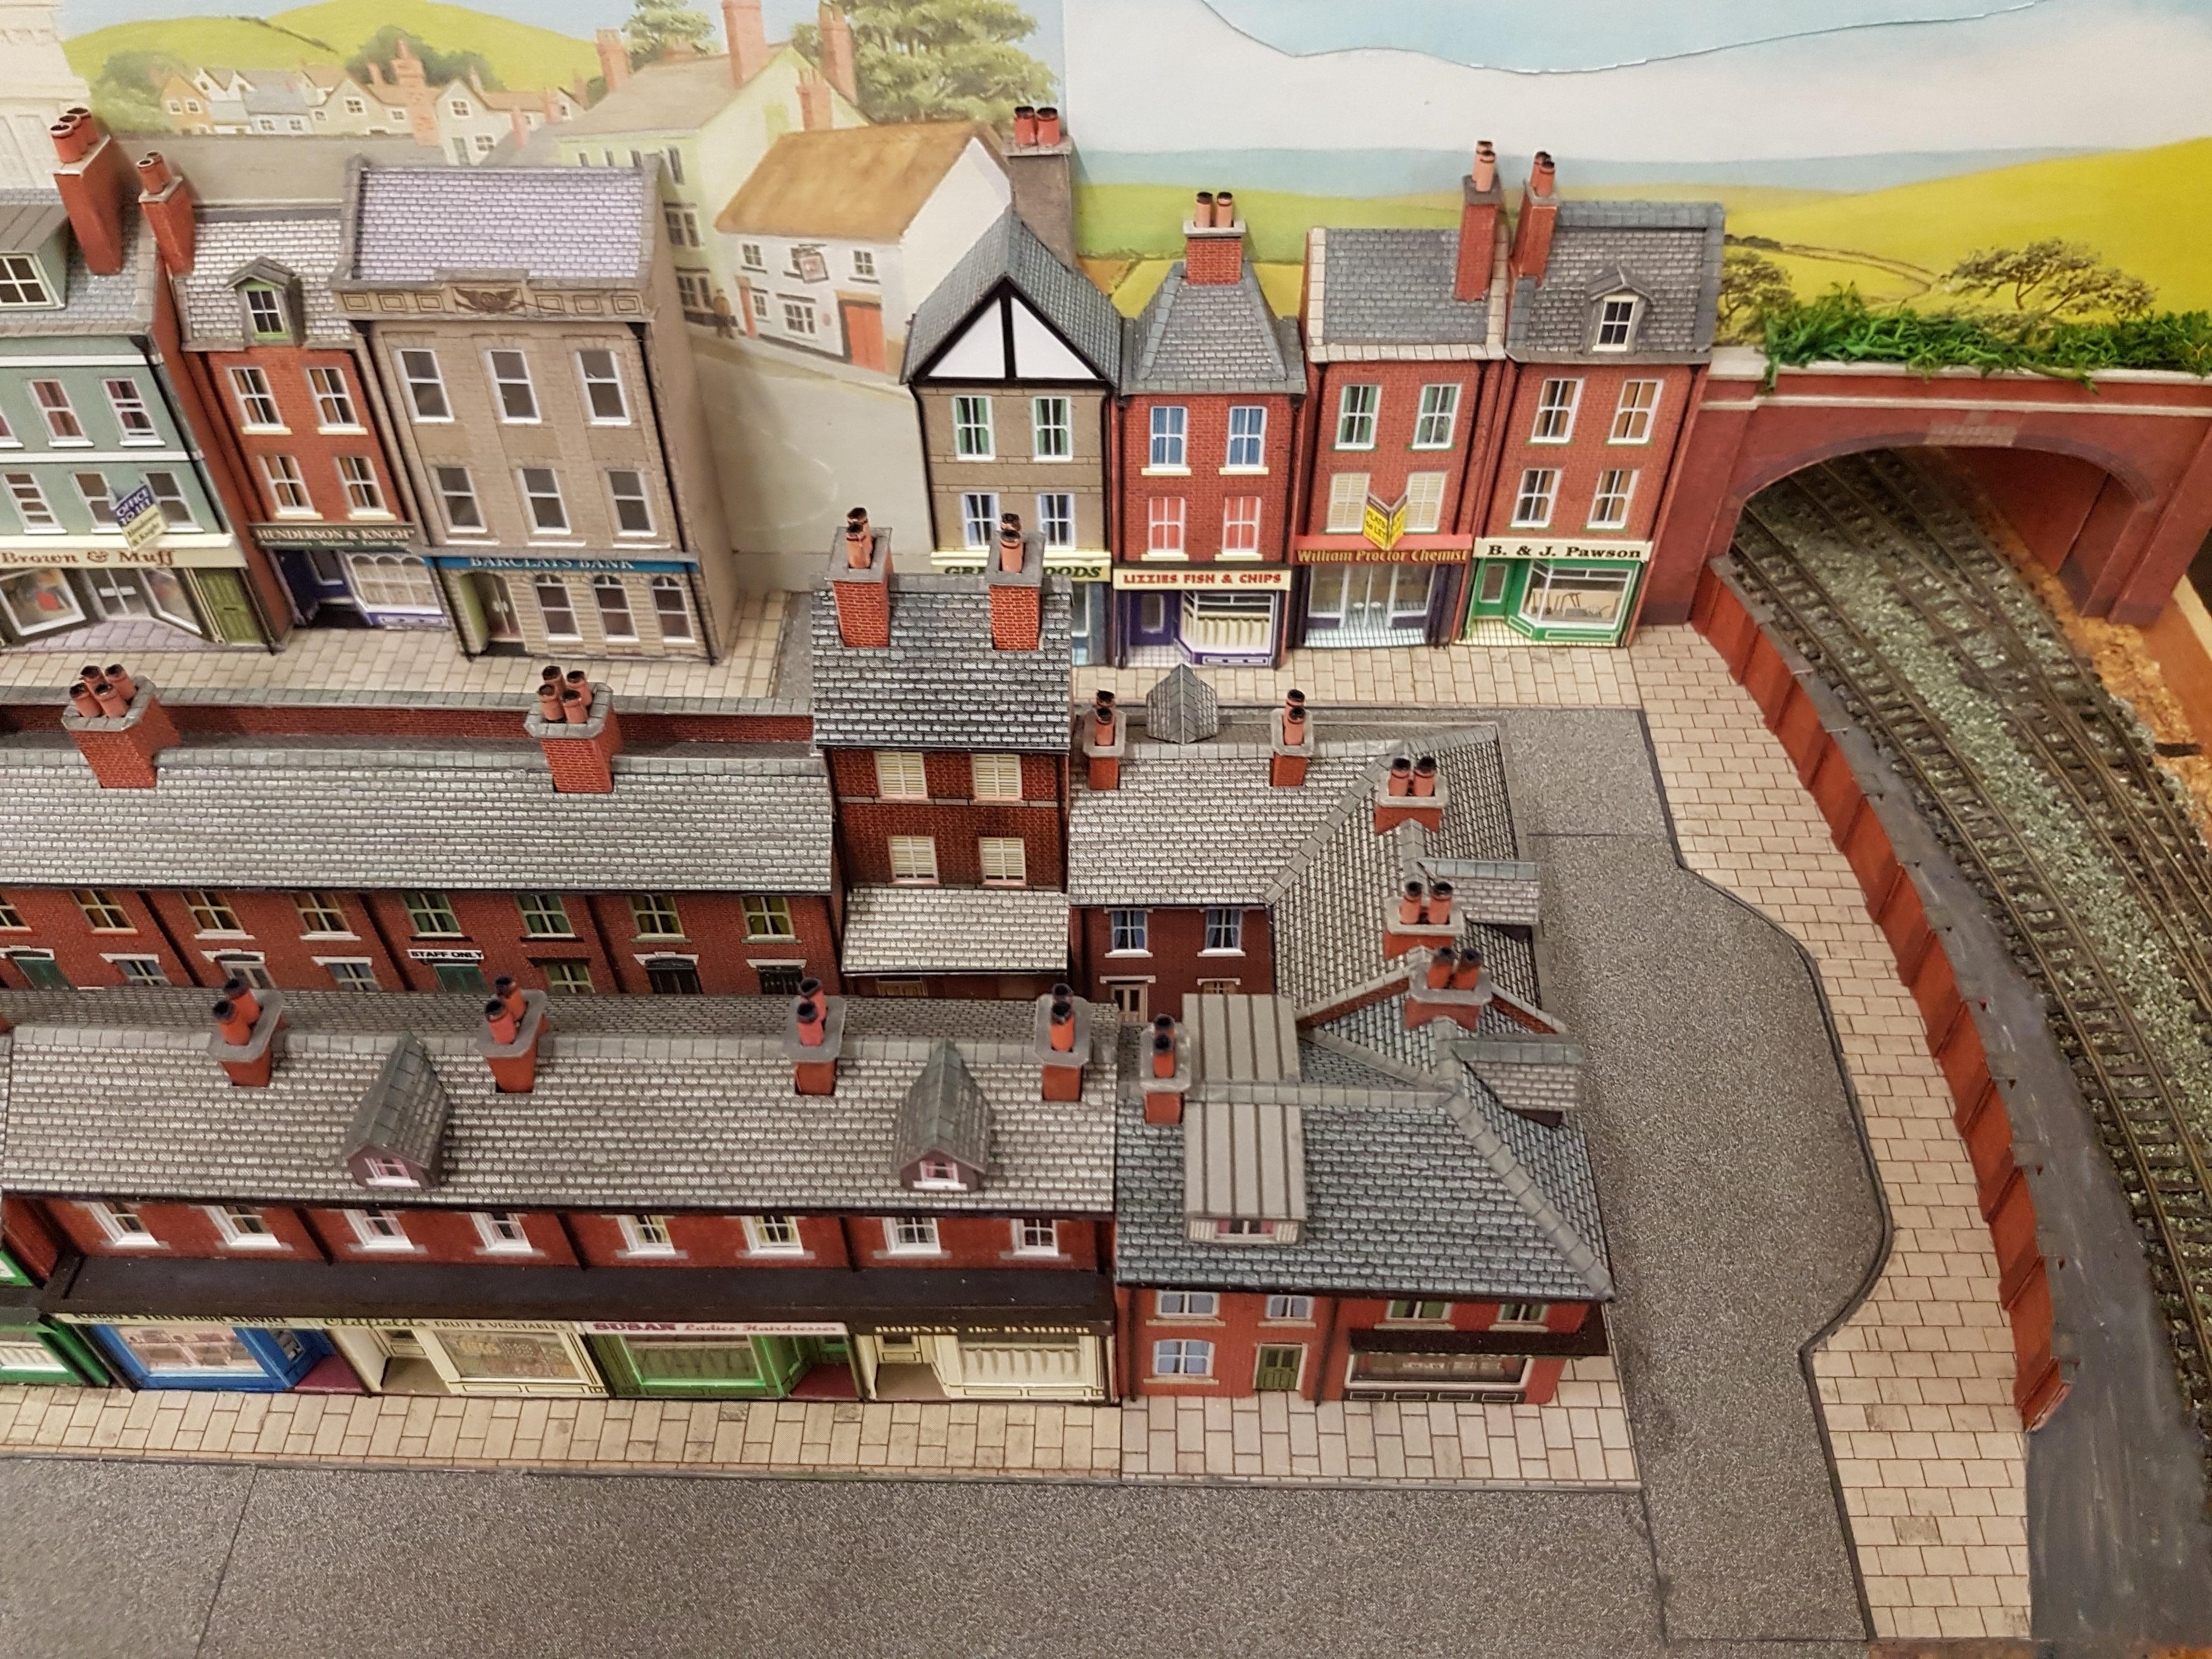 Another view of the new row of shops and pubs on the N gauge layout